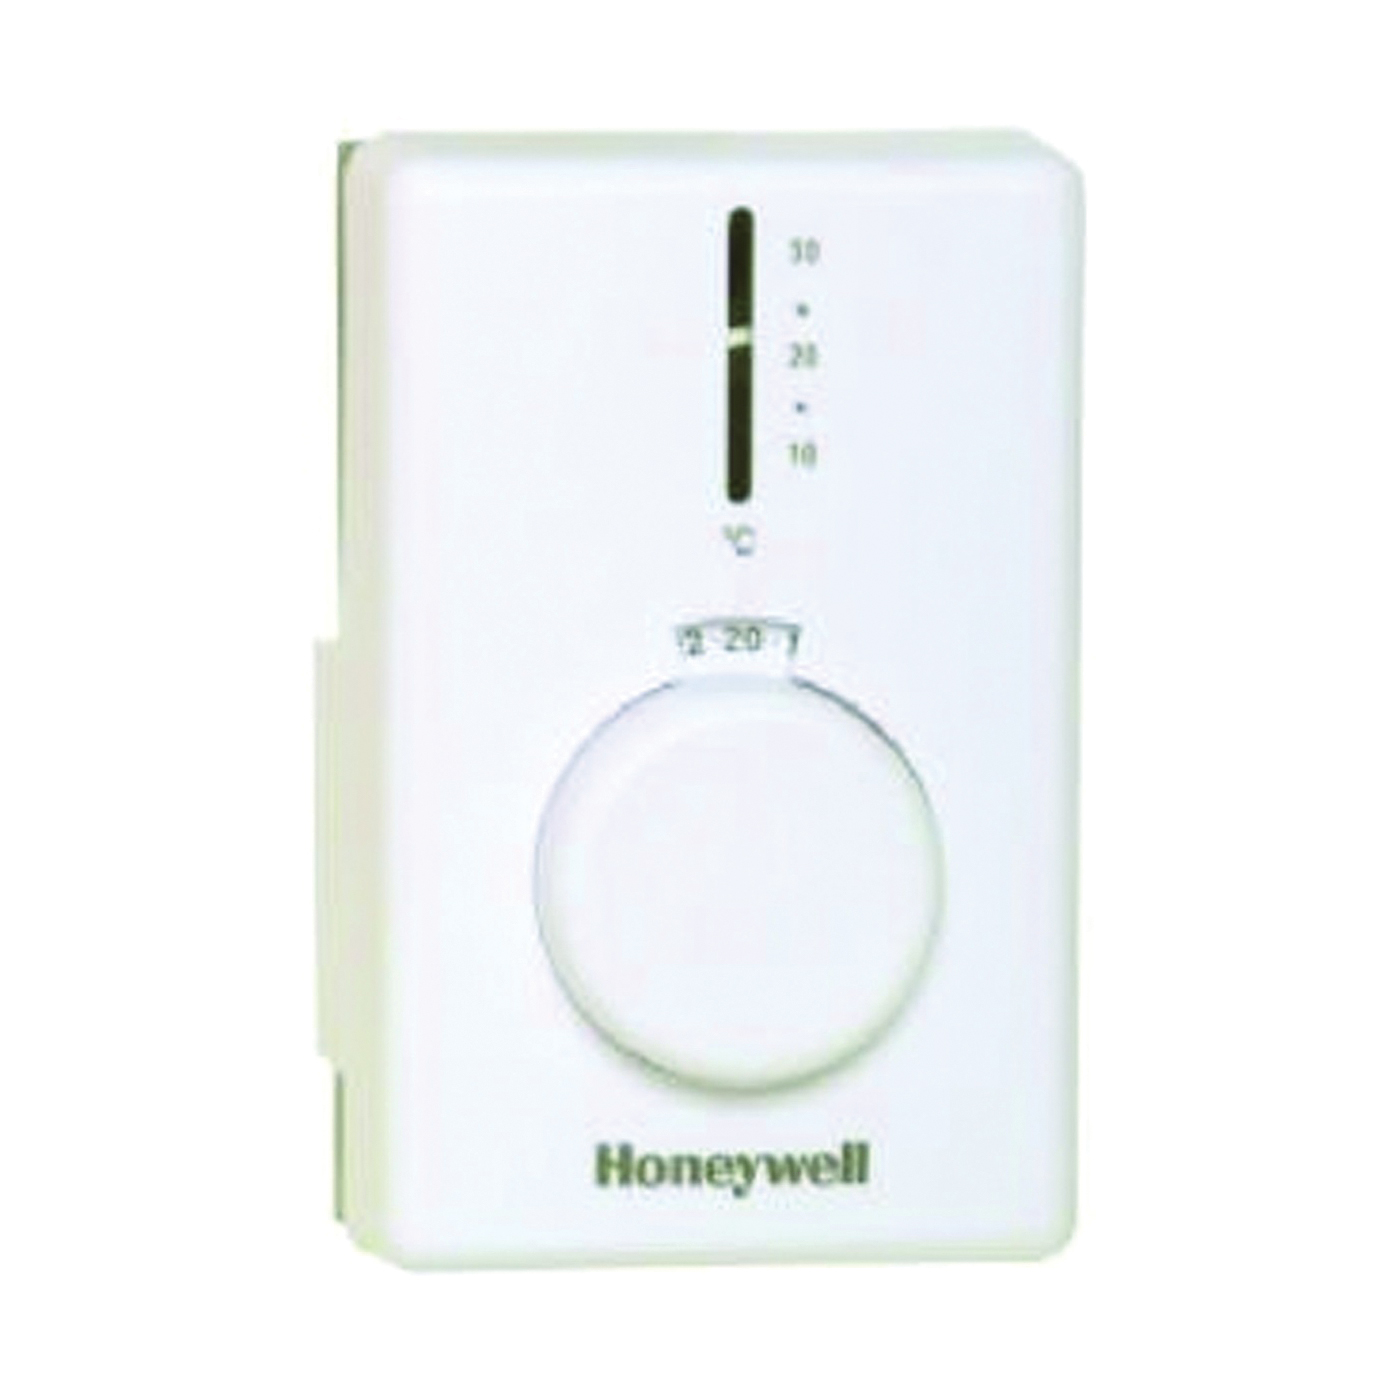 Honeywell CT62B1015/E1